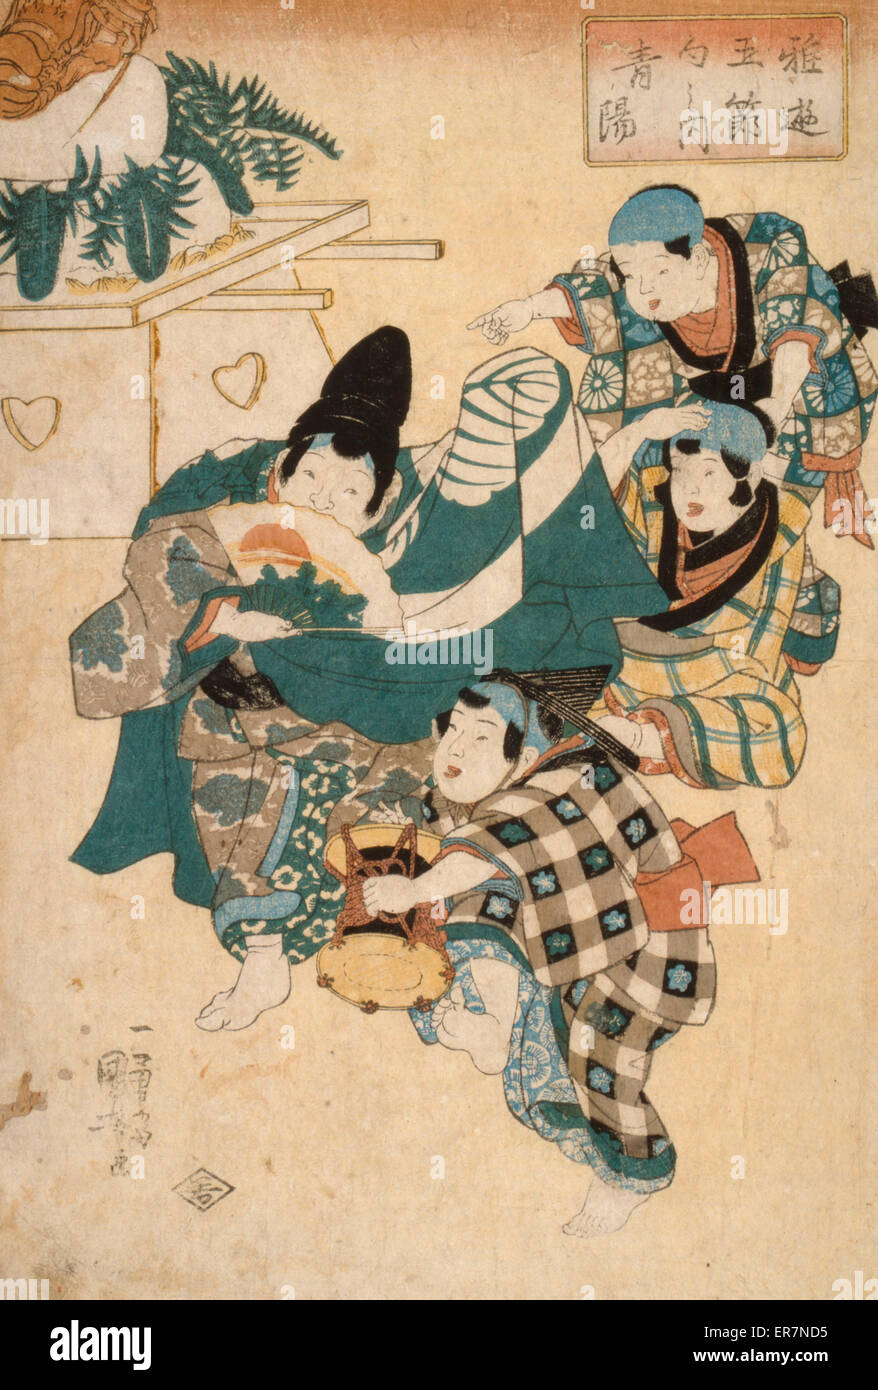 Children parading. Ukiyo-e print illustration showing children gaily following a boy carrying a hand drum. - Stock Image